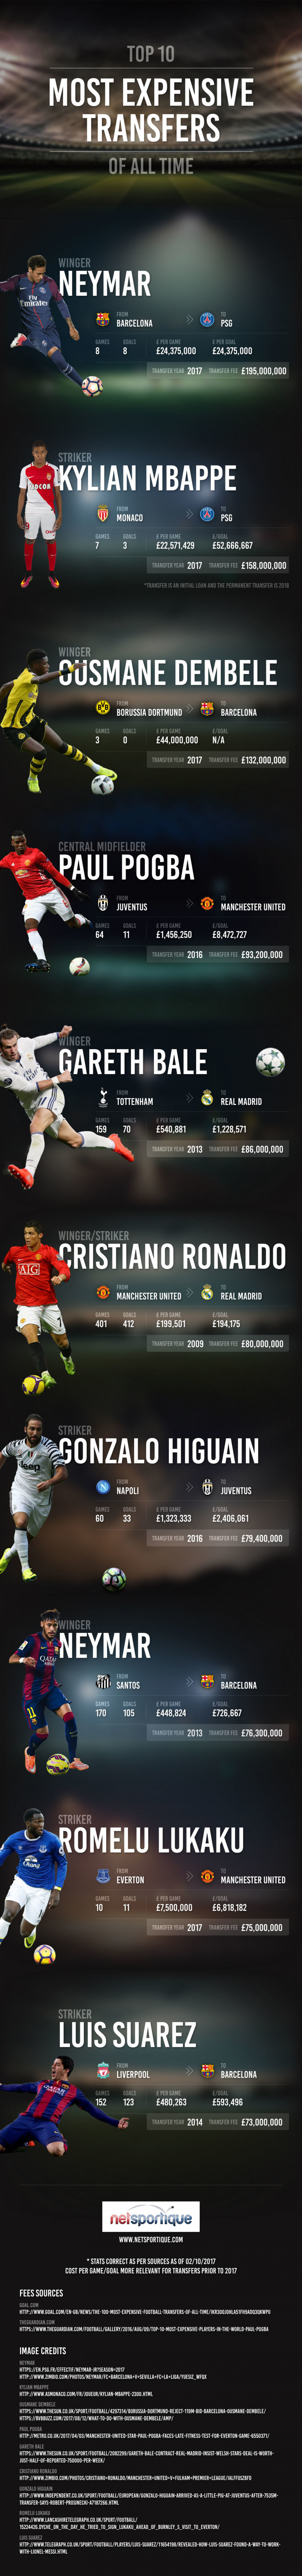 Top 10 Most Expensive Transfers of All Time Infographic